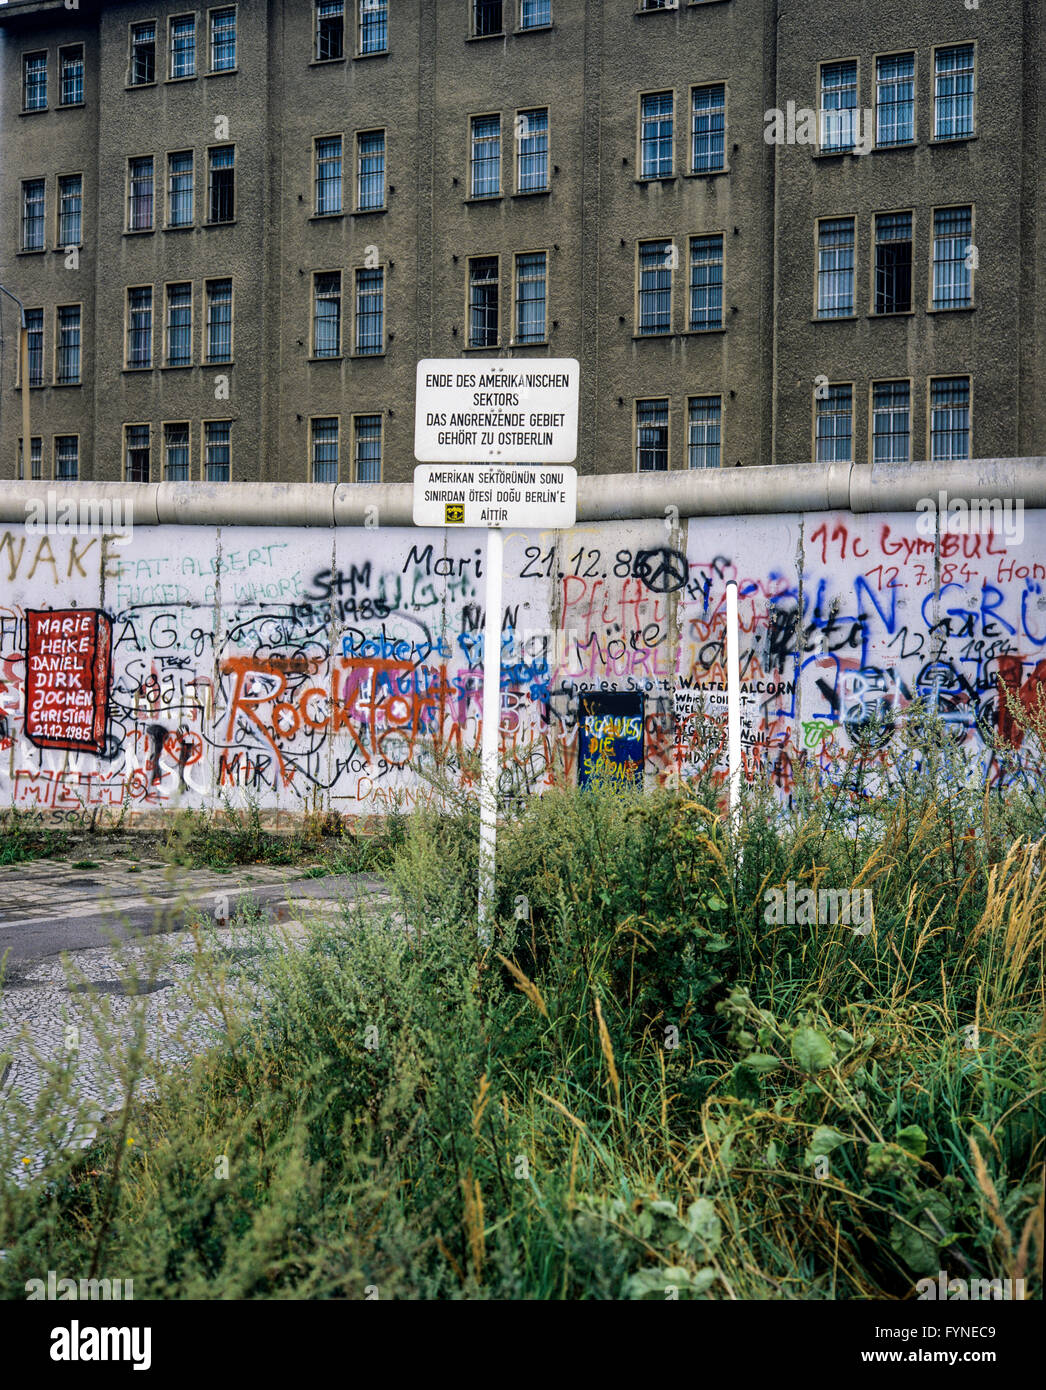 August 1986, Berlin Wall graffitis, warning sign for end of American sector, East Berlin building, West Berlin side, - Stock Image